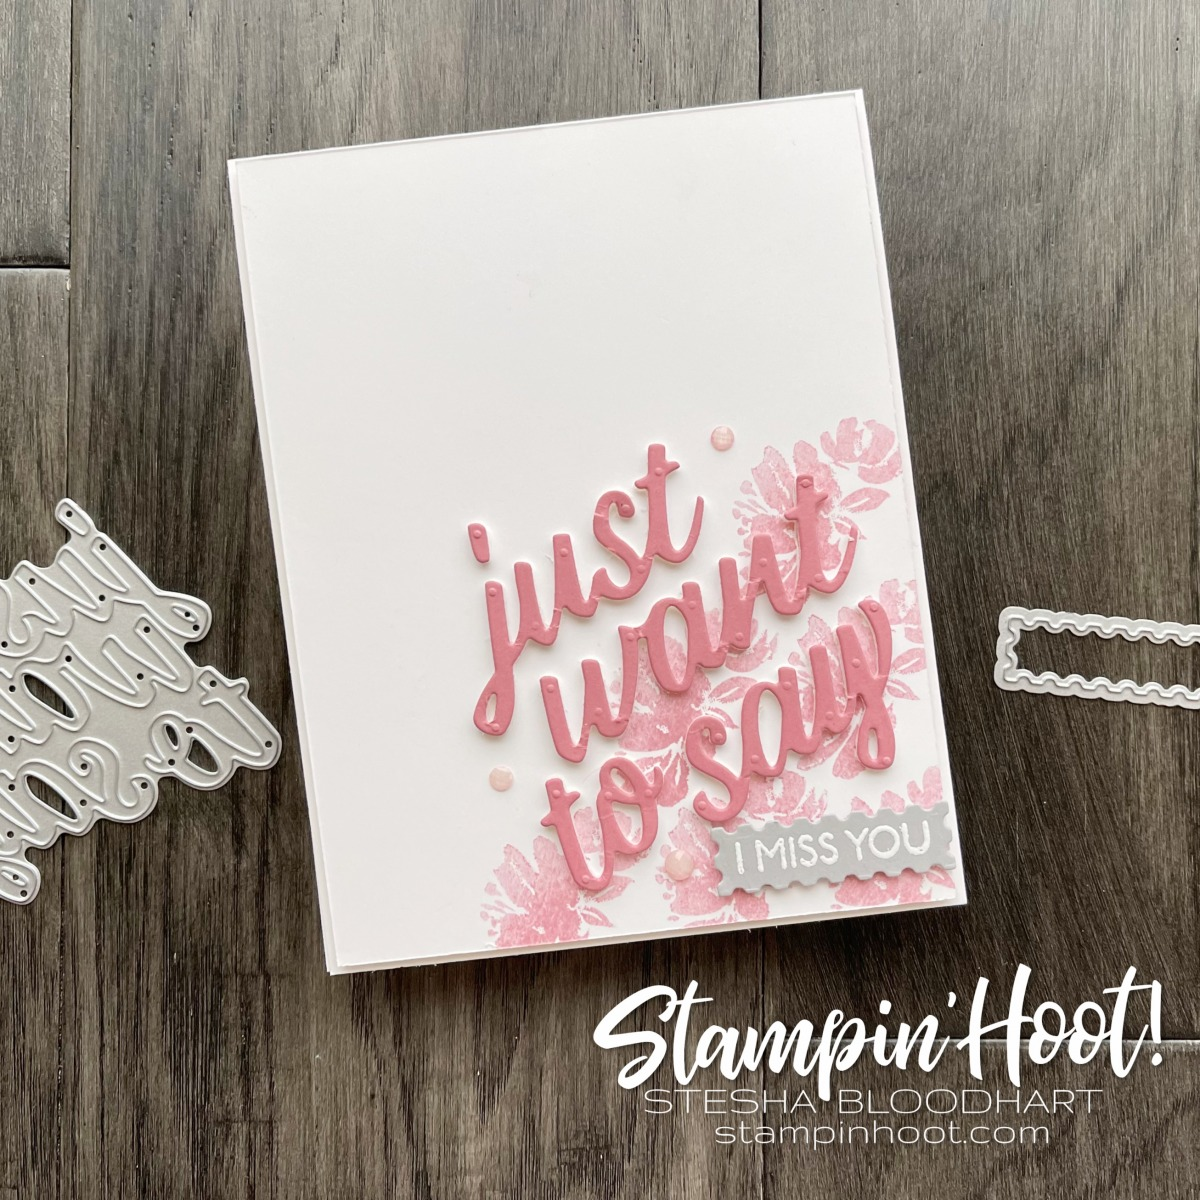 Create this card using the Art Gallery Bundle from Stampin' Up! I Miss You Card by Stesha Bloodhart, Stampin' Hoot!